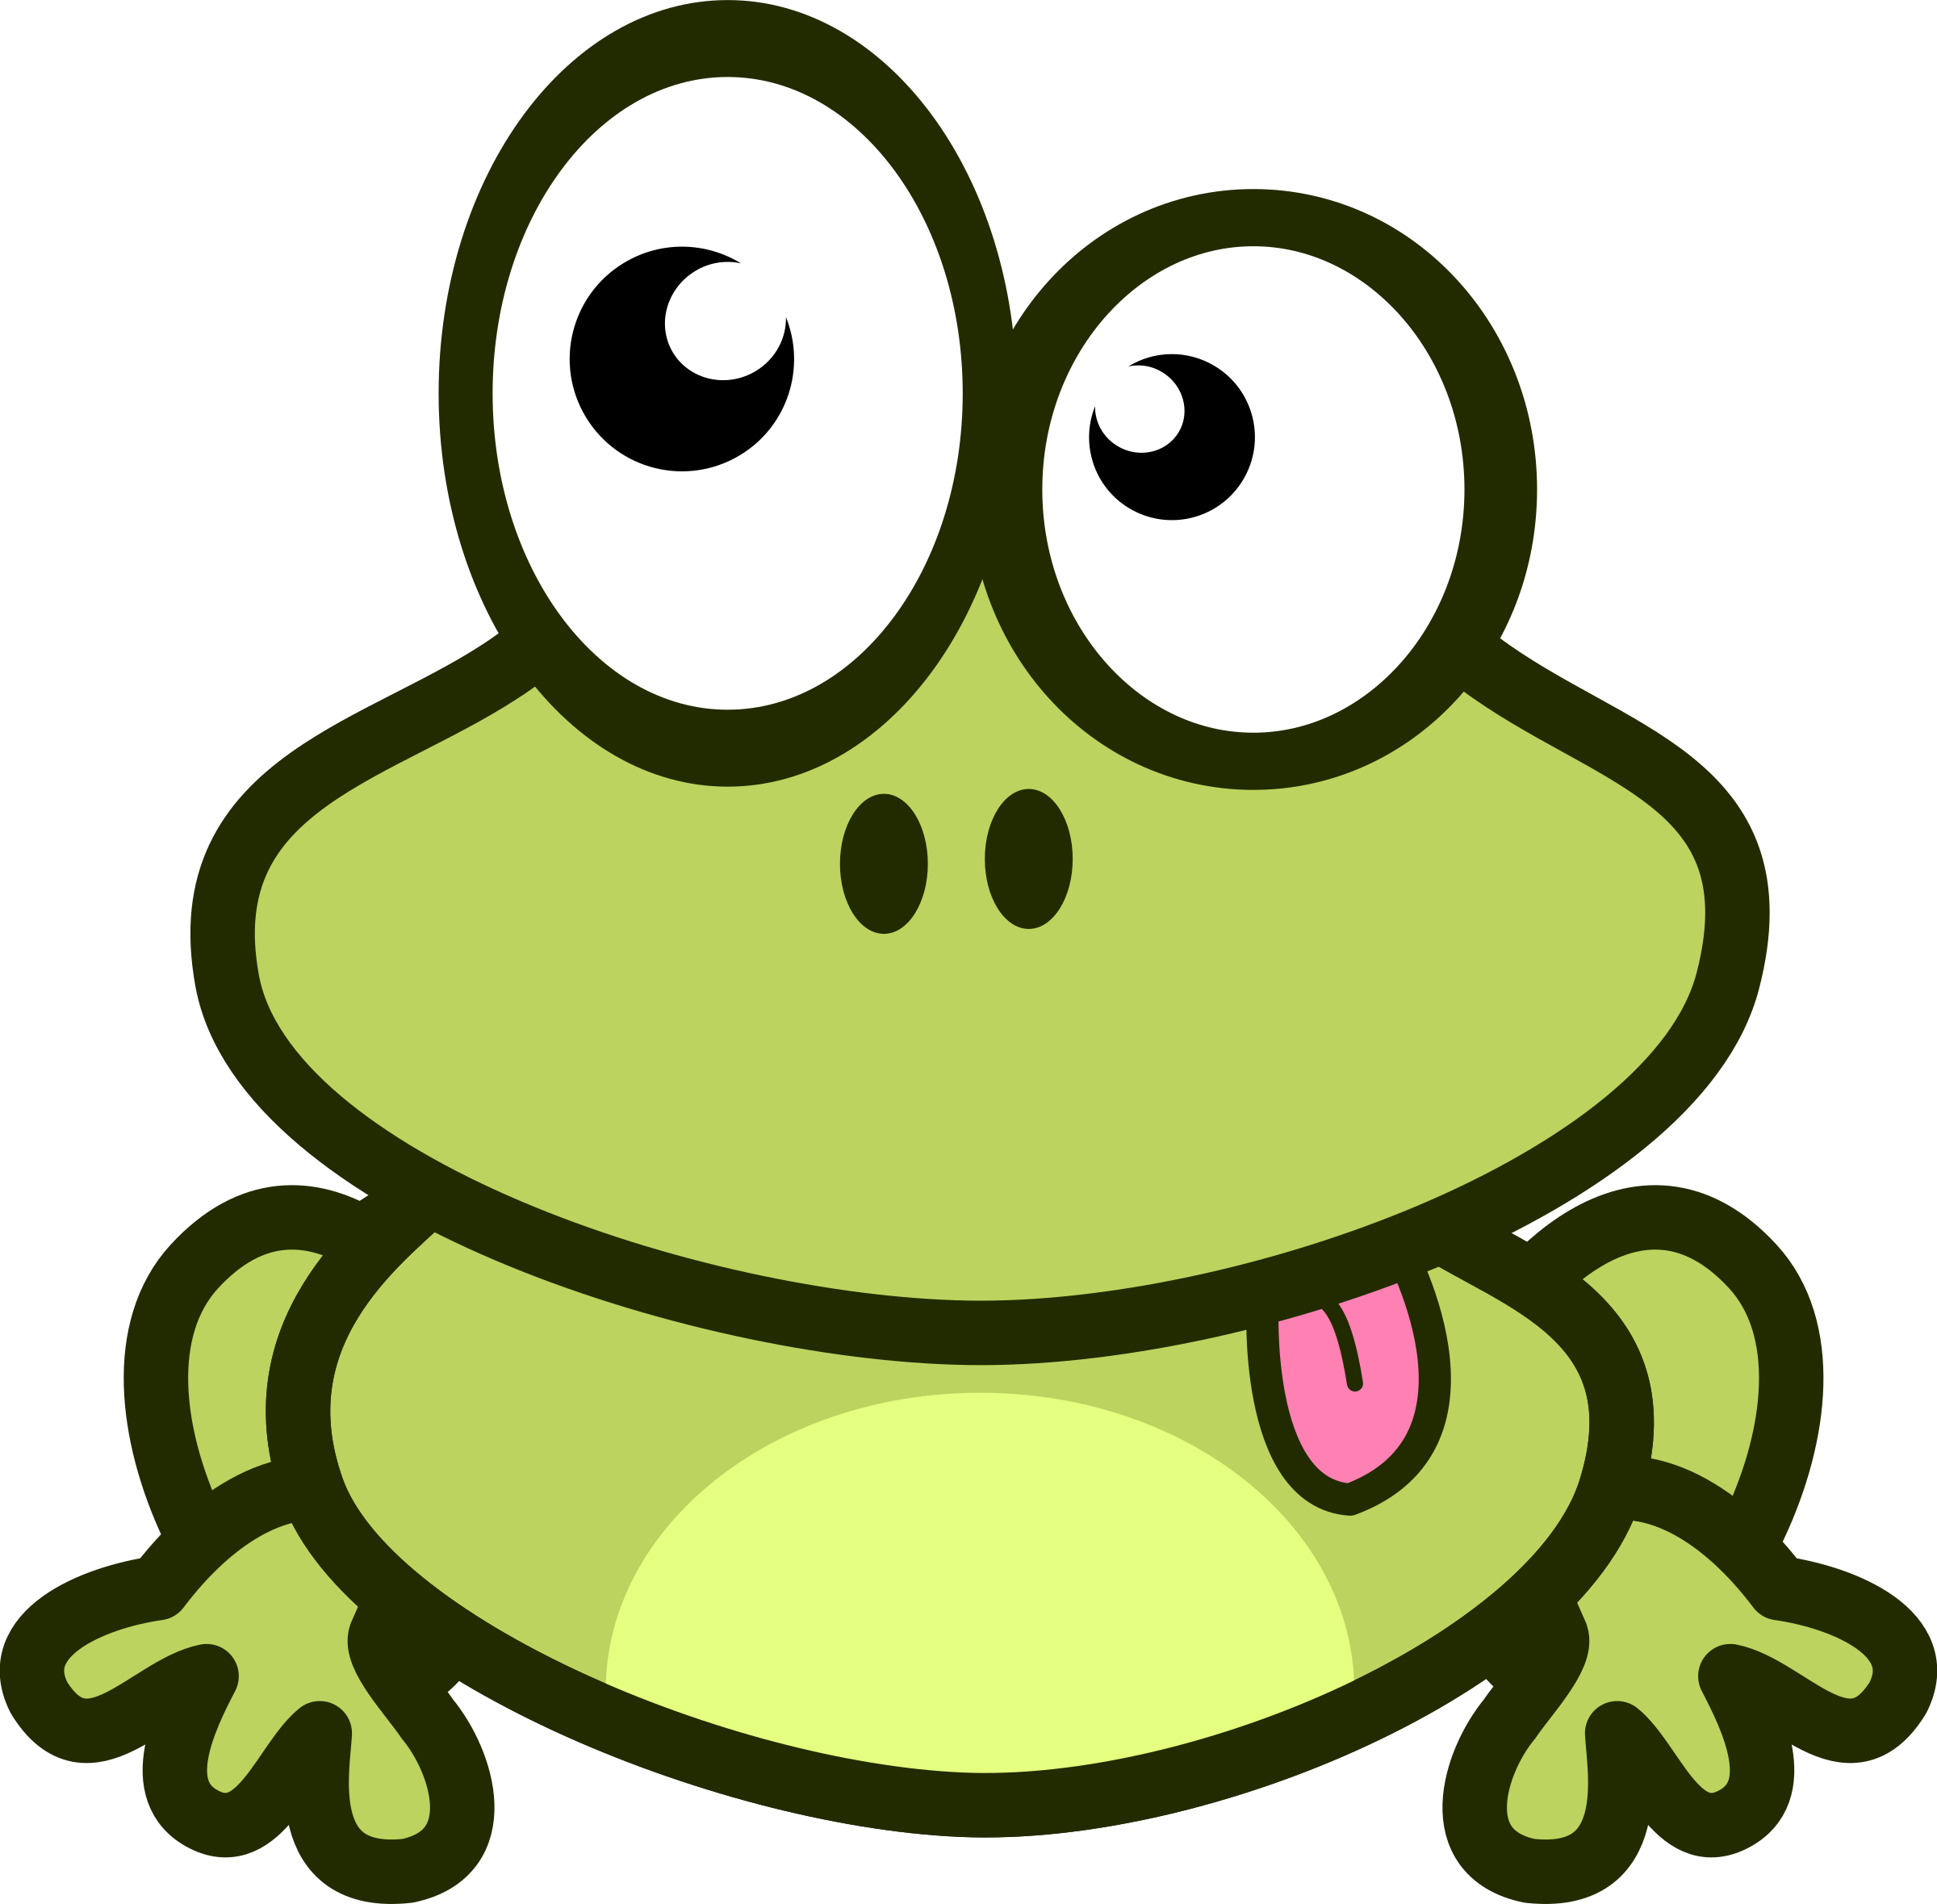 Grenouille tirant la langue by mathafix